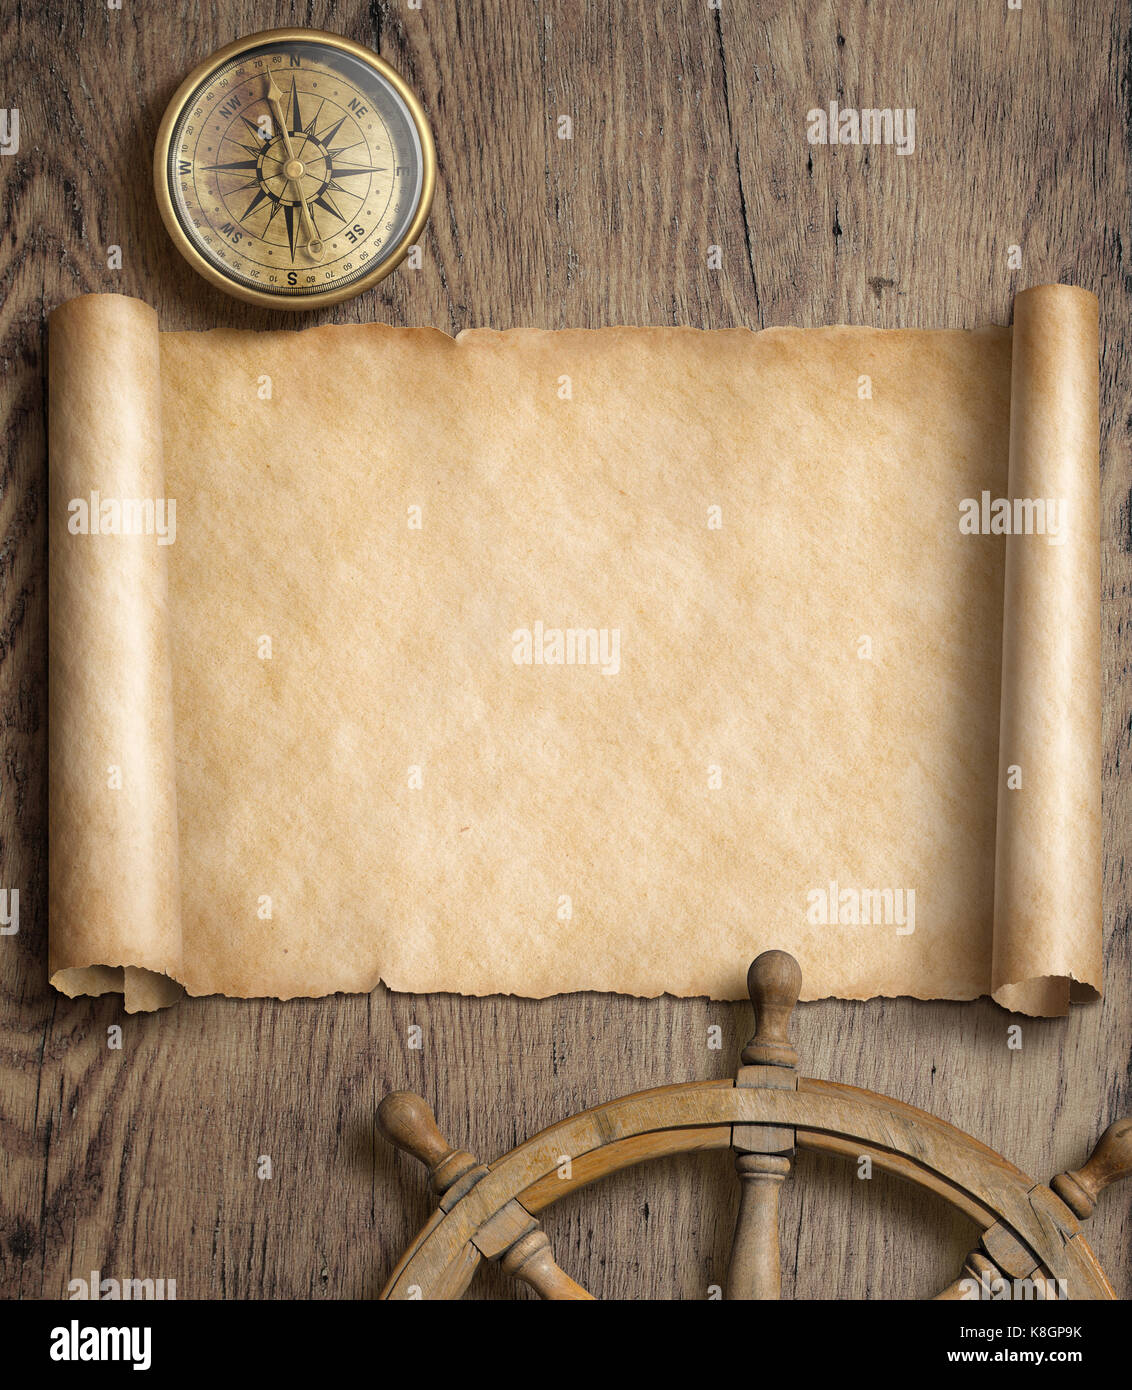 Old map background with comp and wheel on wood. Adventure or ... Old Map Background on